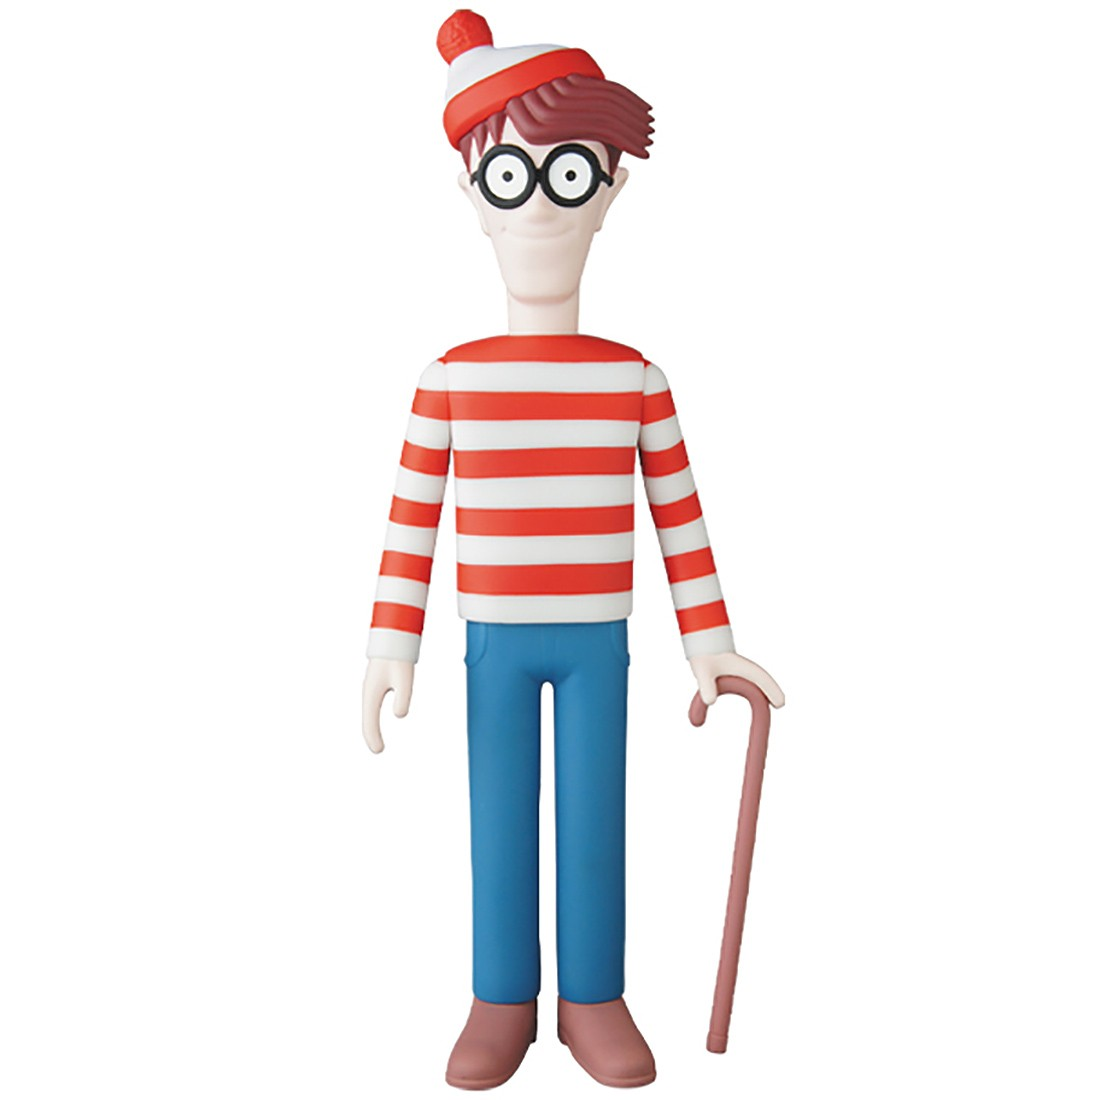 PREORDER - Medicom VCD Where's Wally? Wally Figure (red)